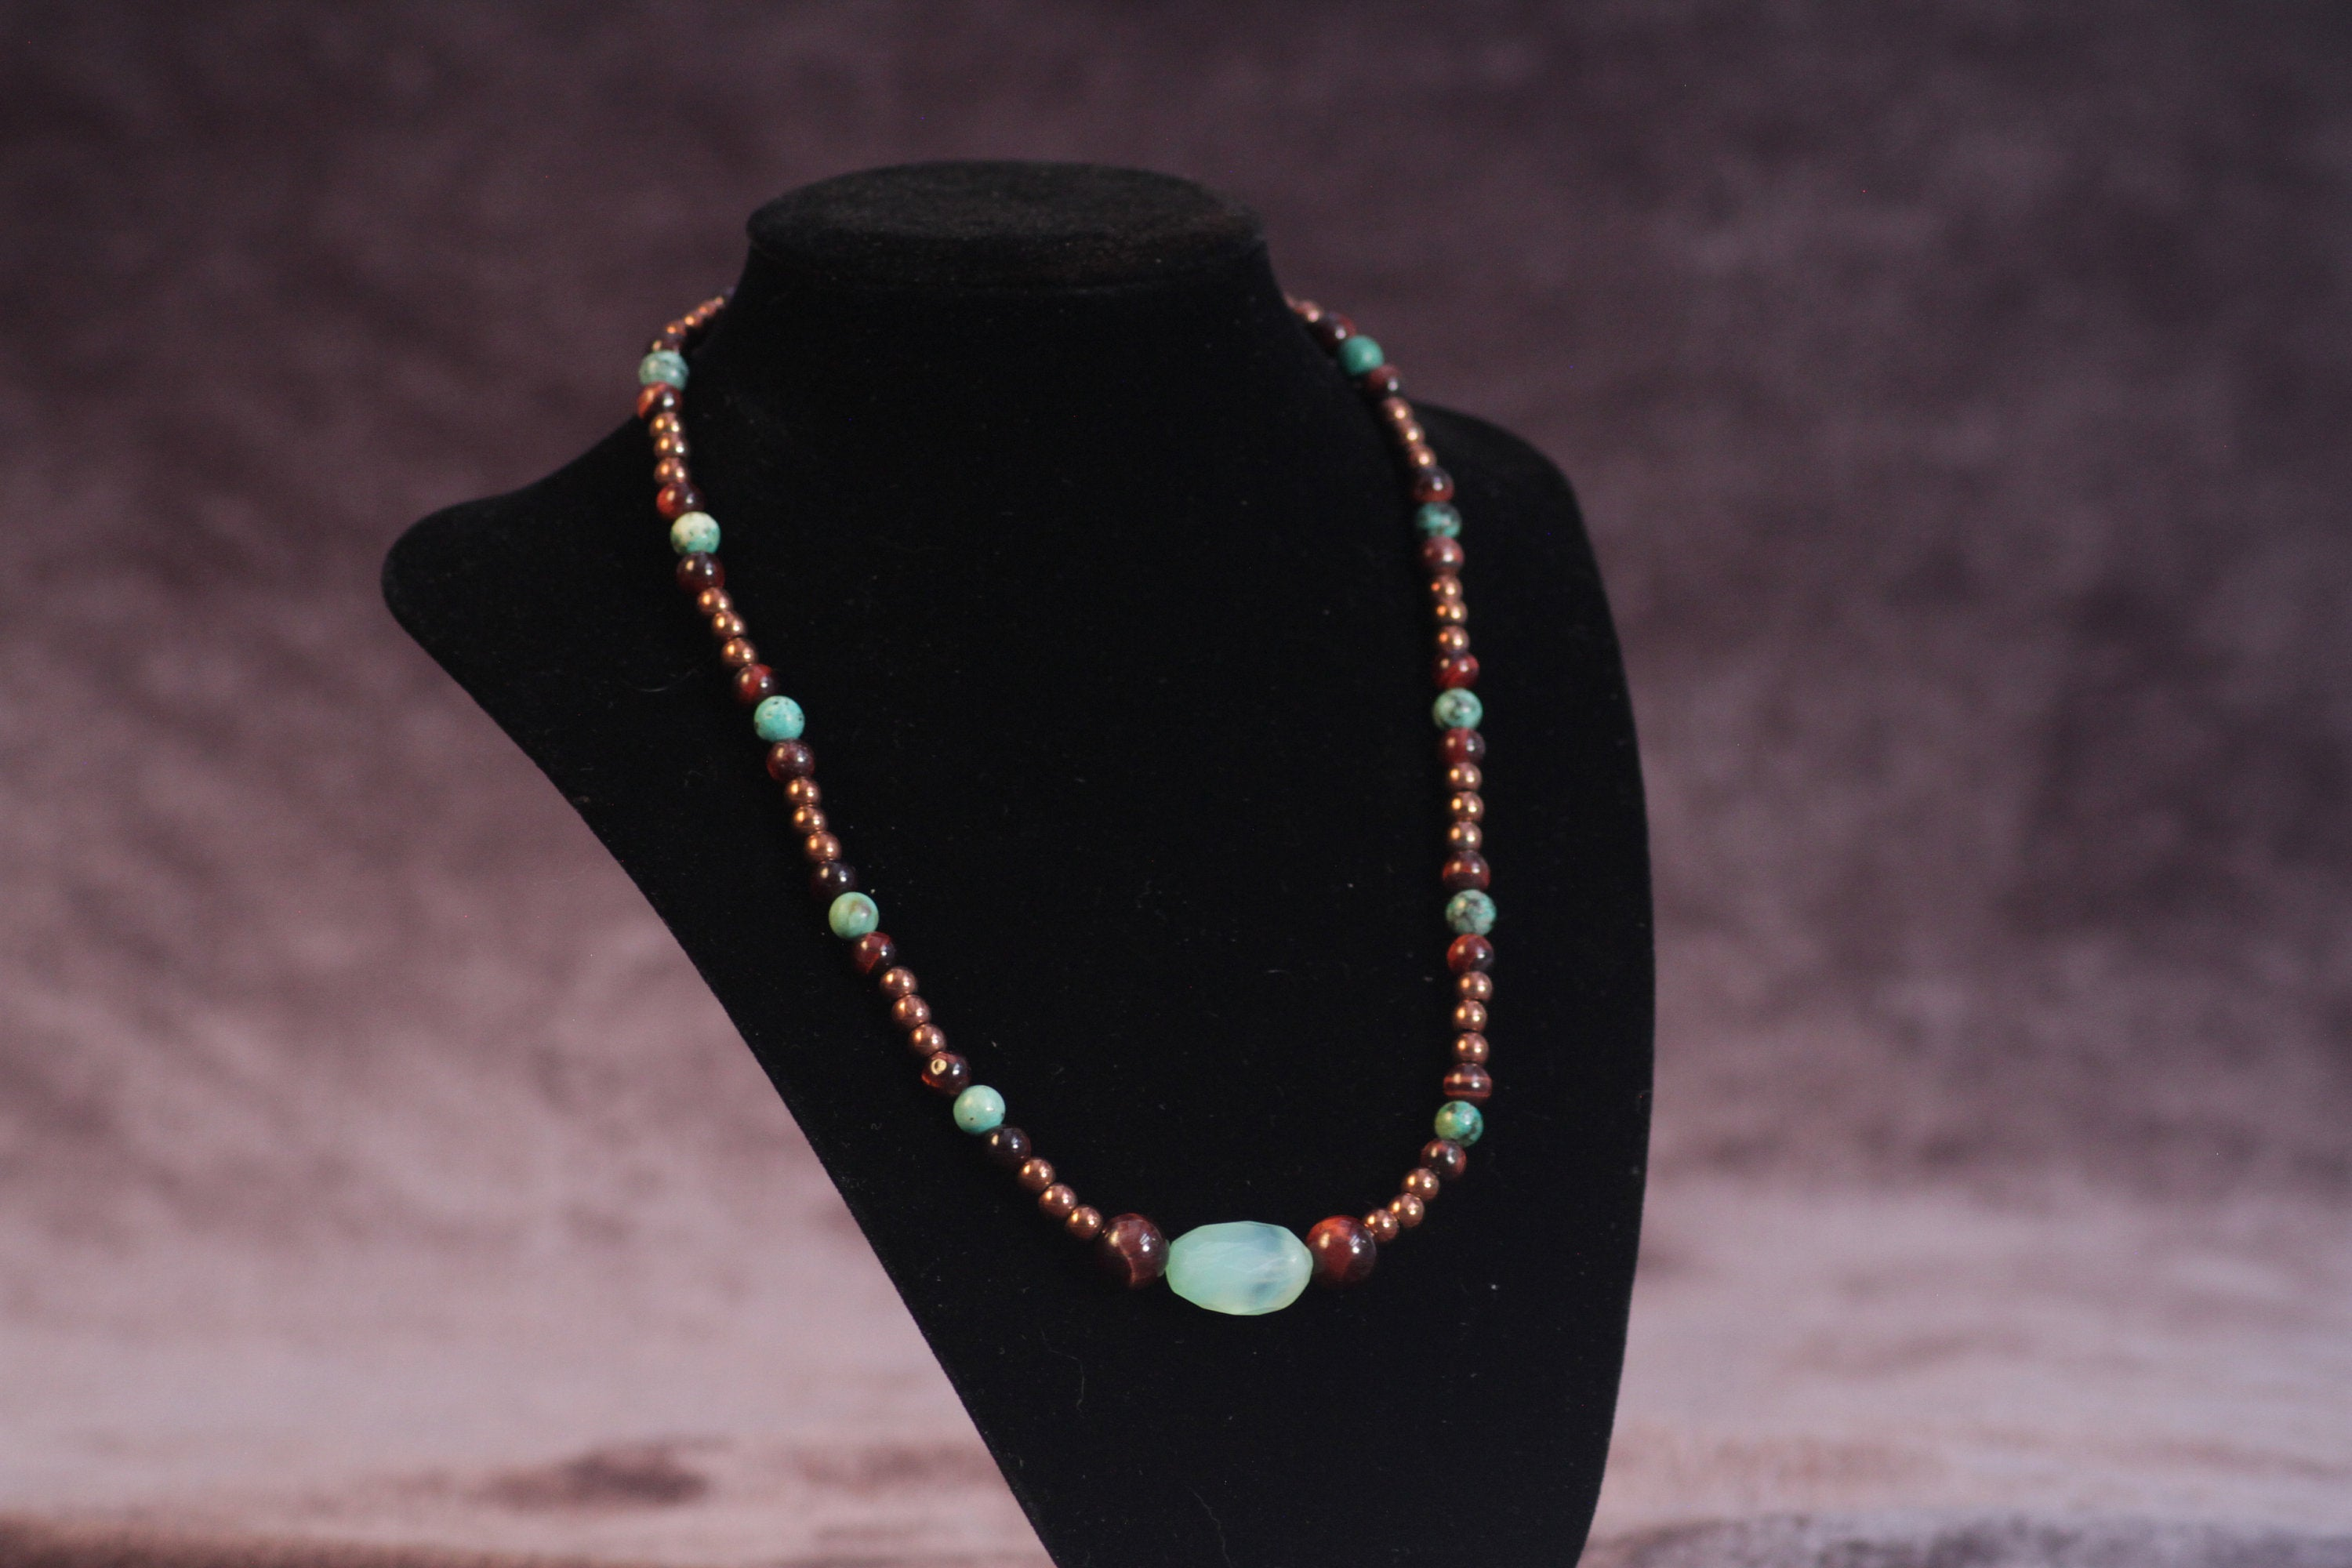 Men's Turquoise and Chalcedony Pendant Necklace